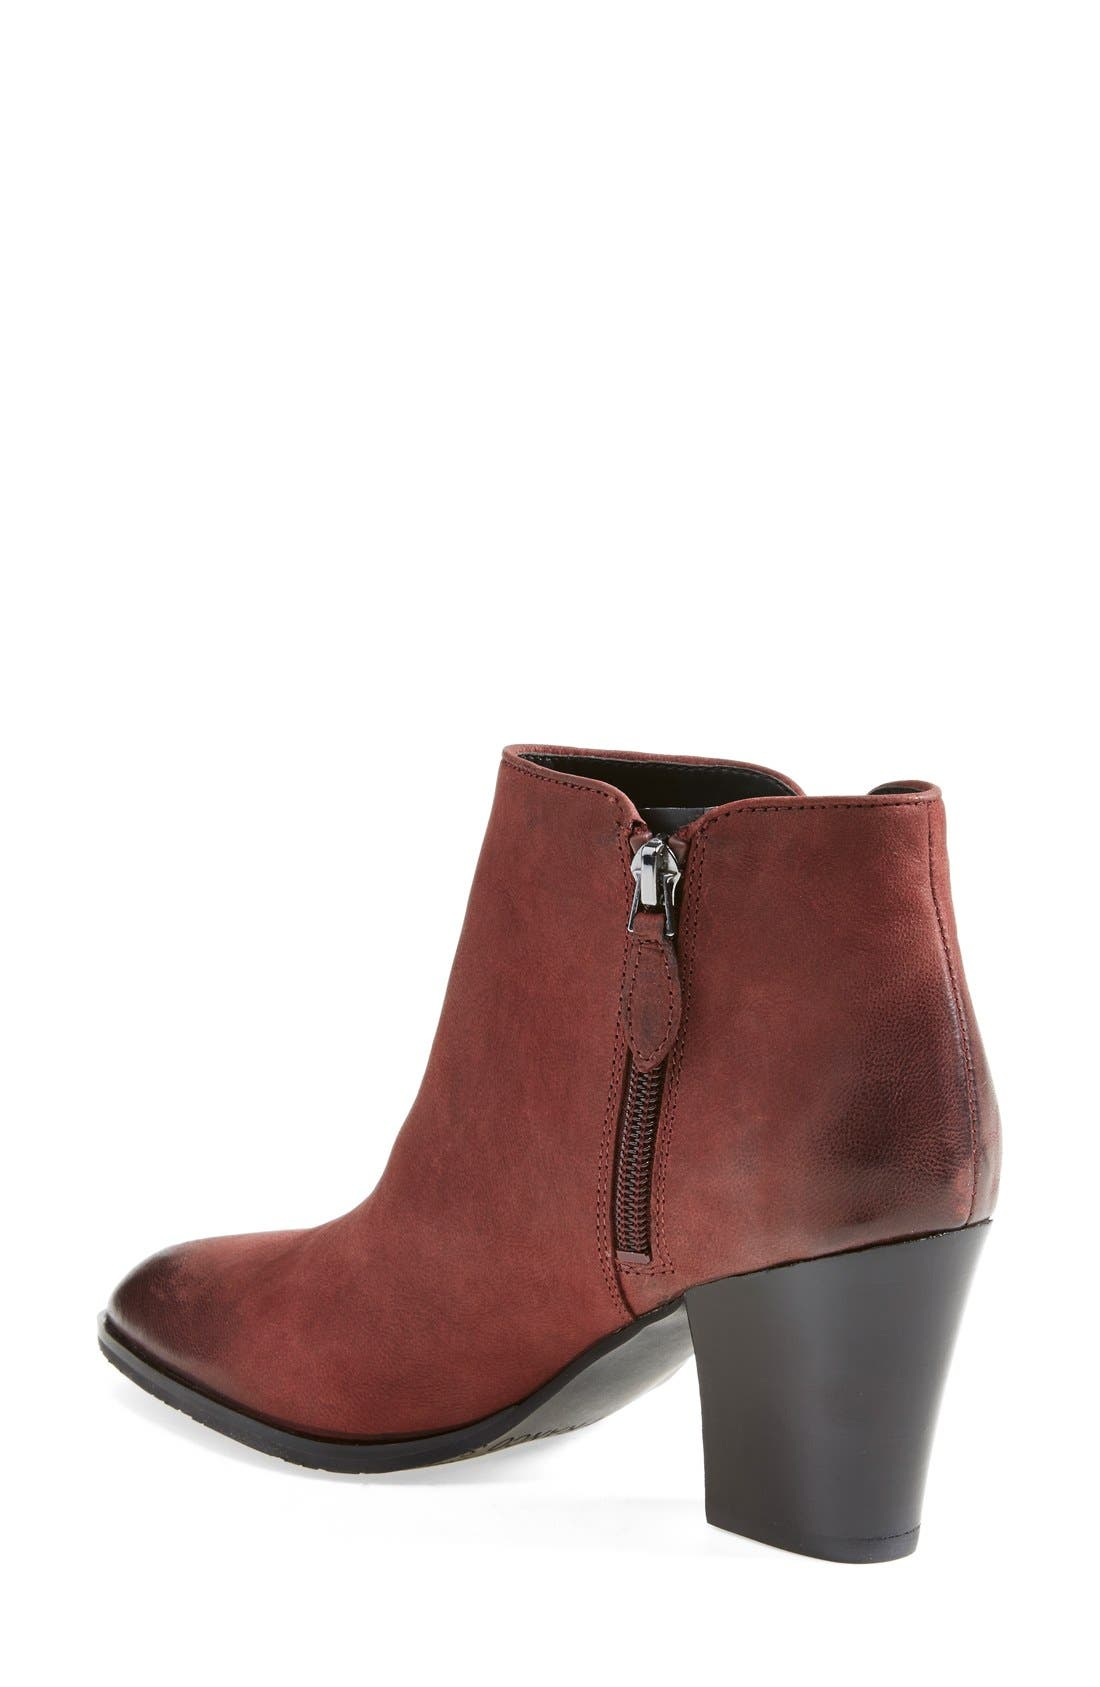 Alternate Image 2  - Franco Sarto 'Agenda' Leather Bootie (Women)